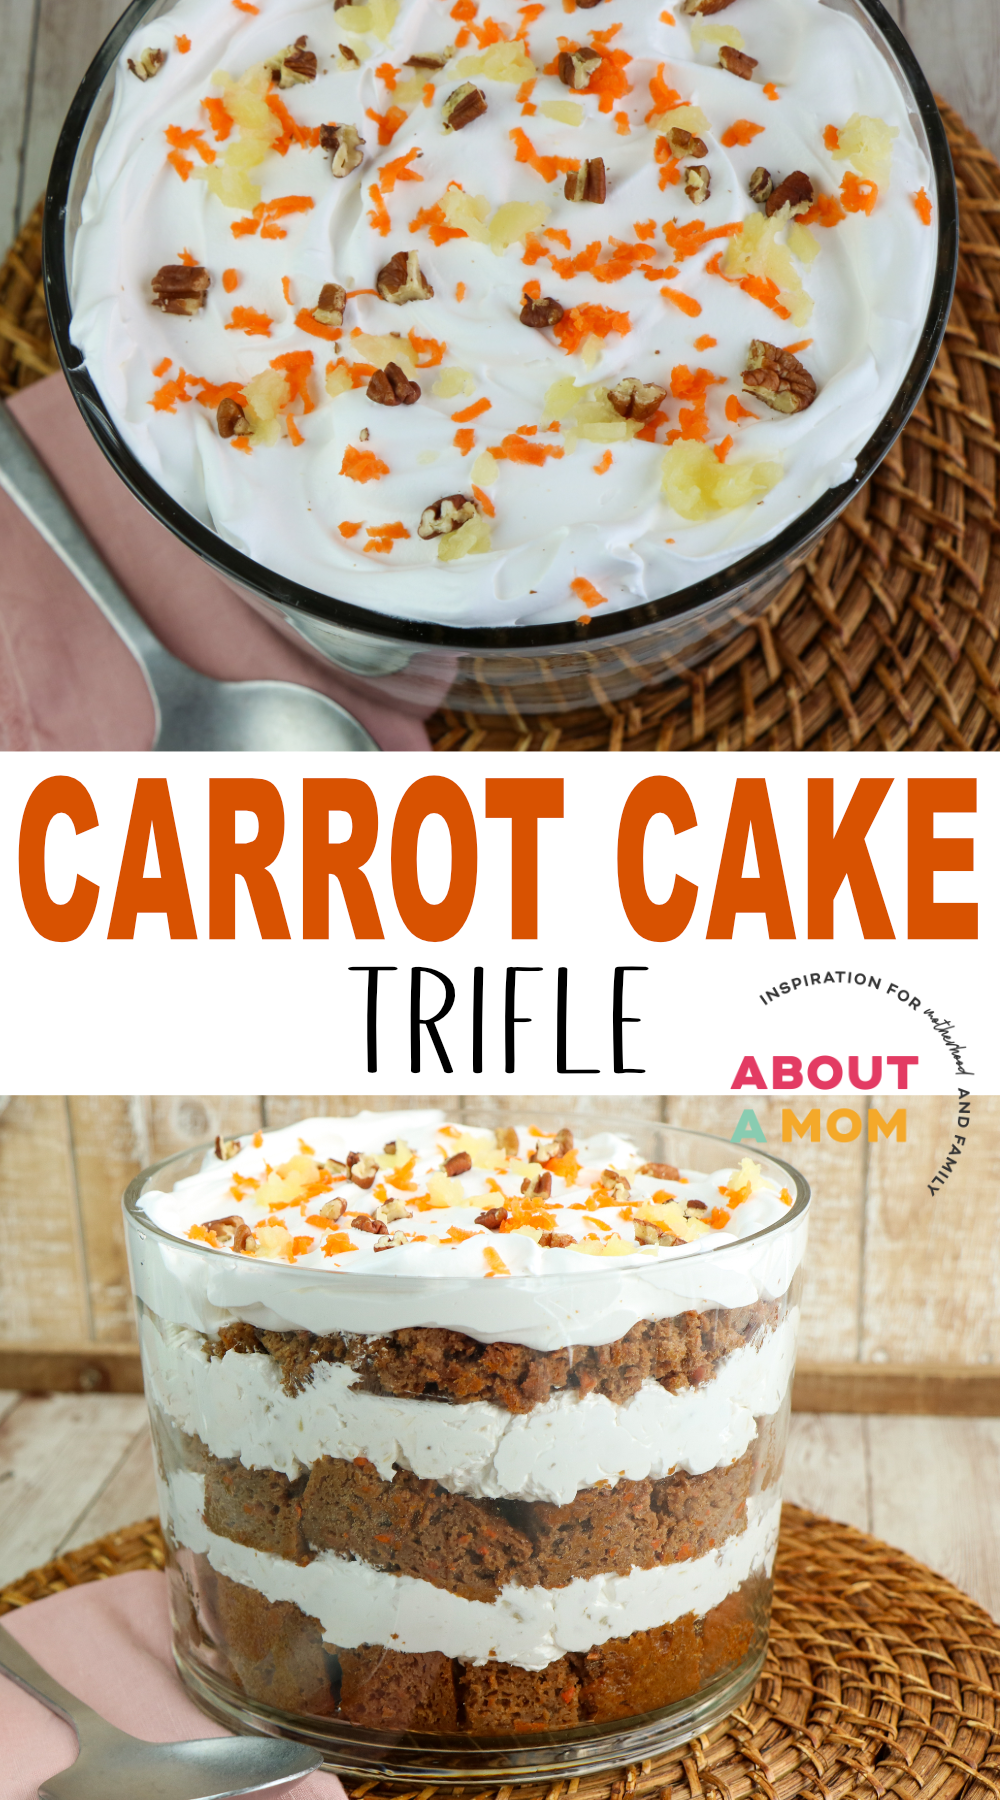 This Carrot Cake Trifle recipe offers a delicious blend of scrumptious carrot cake and whipped cream cheese filling. It will be a hit at any dinner party!